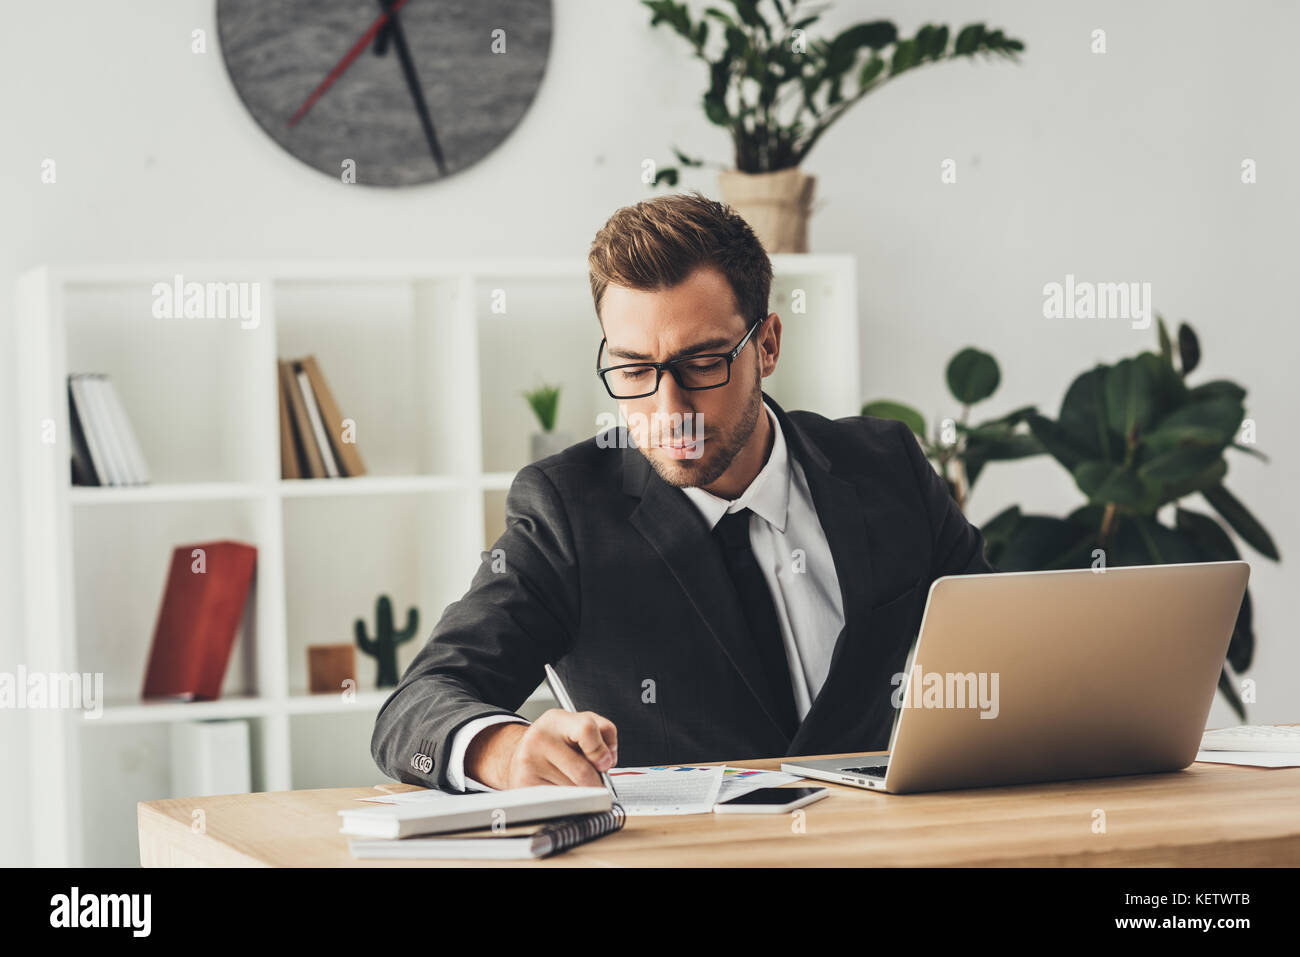 businessman working in modern office Stock Photo